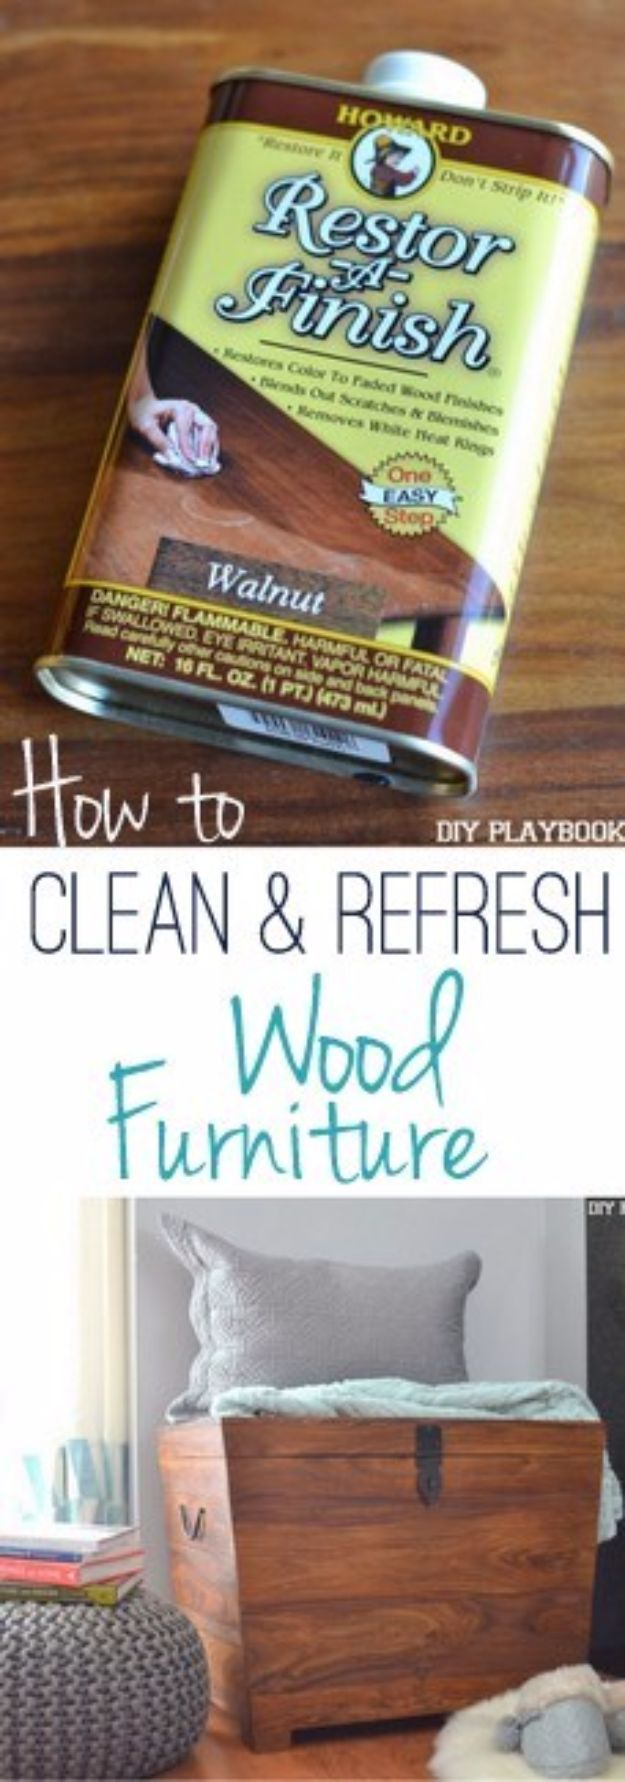 Cool Woodworking Tips - Clean And Refresh Wood Furniture - Easy Woodworking Ideas, Woodworking Tips and Tricks, Woodworking Tips For Beginners, Basic Guide For Woodworking - Refinishing Wood, Sanding and Staining, Cleaning Wood and Upcycling Pallets - Tips for Wooden Craft Projects http://diyjoy.com/diy-woodworking-ideas